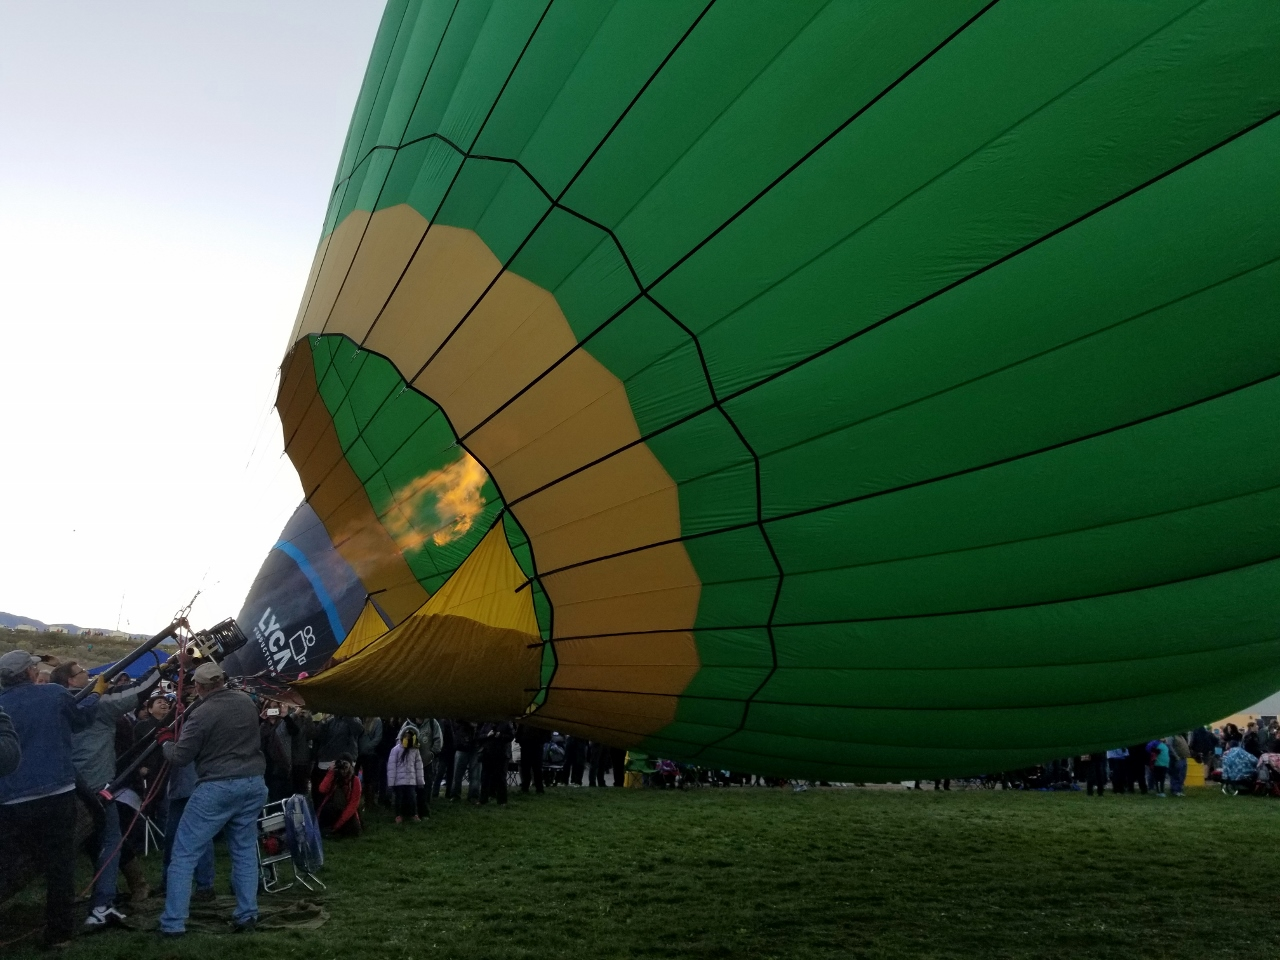 Filling the balloon at the Albuquerque Balloon Fiesta